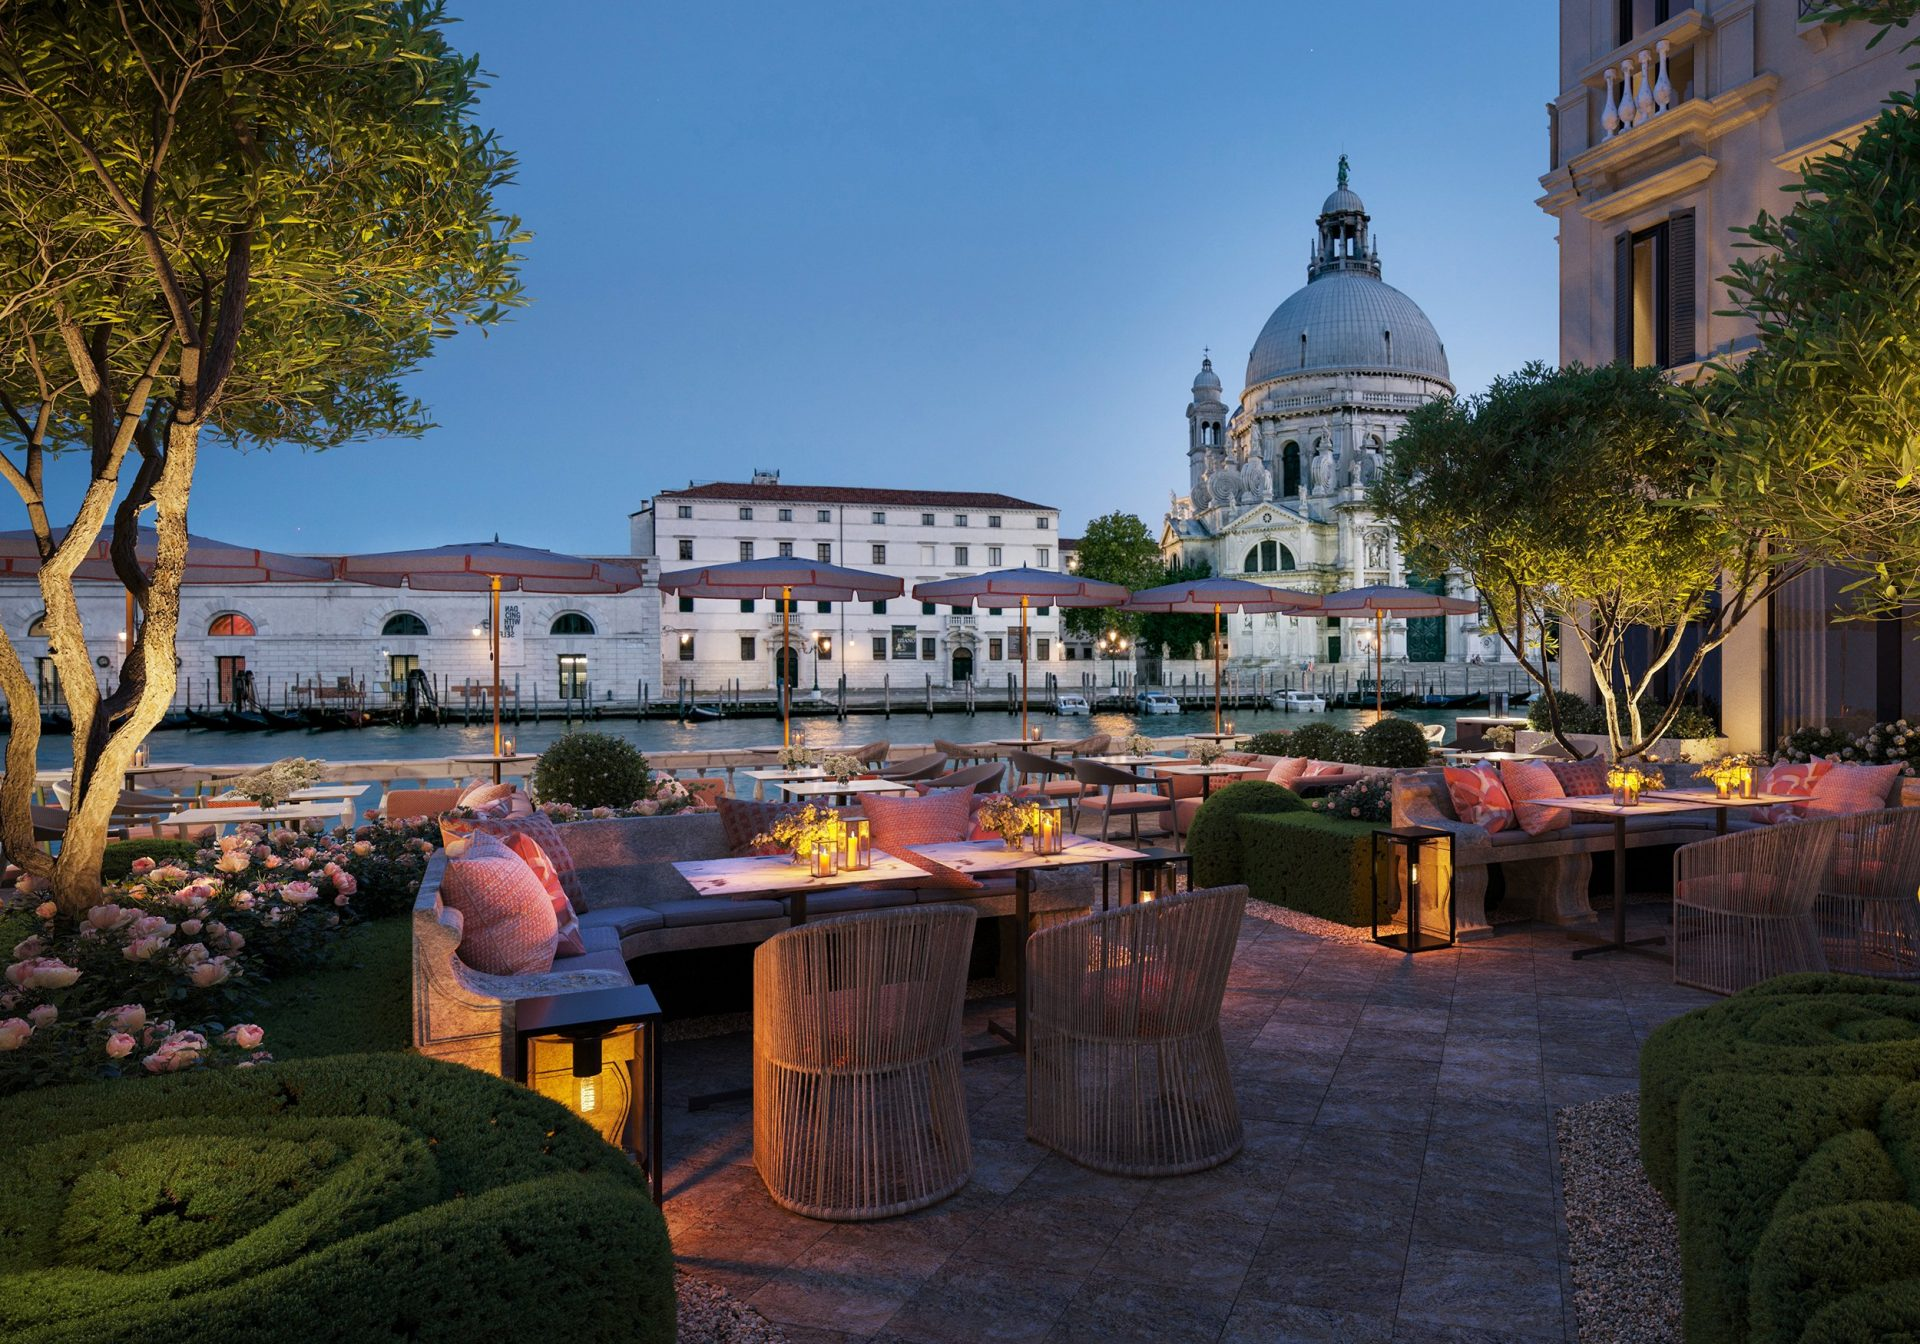 The St. Regis Venice garden terrace